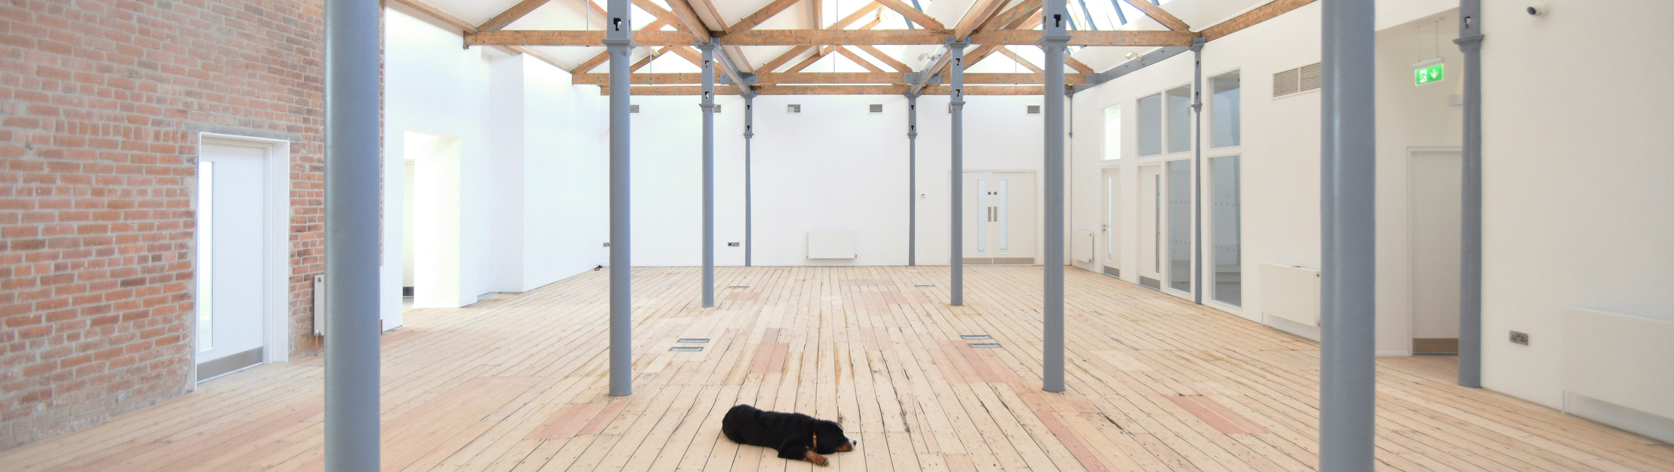 A dog lying in a architecture designed office